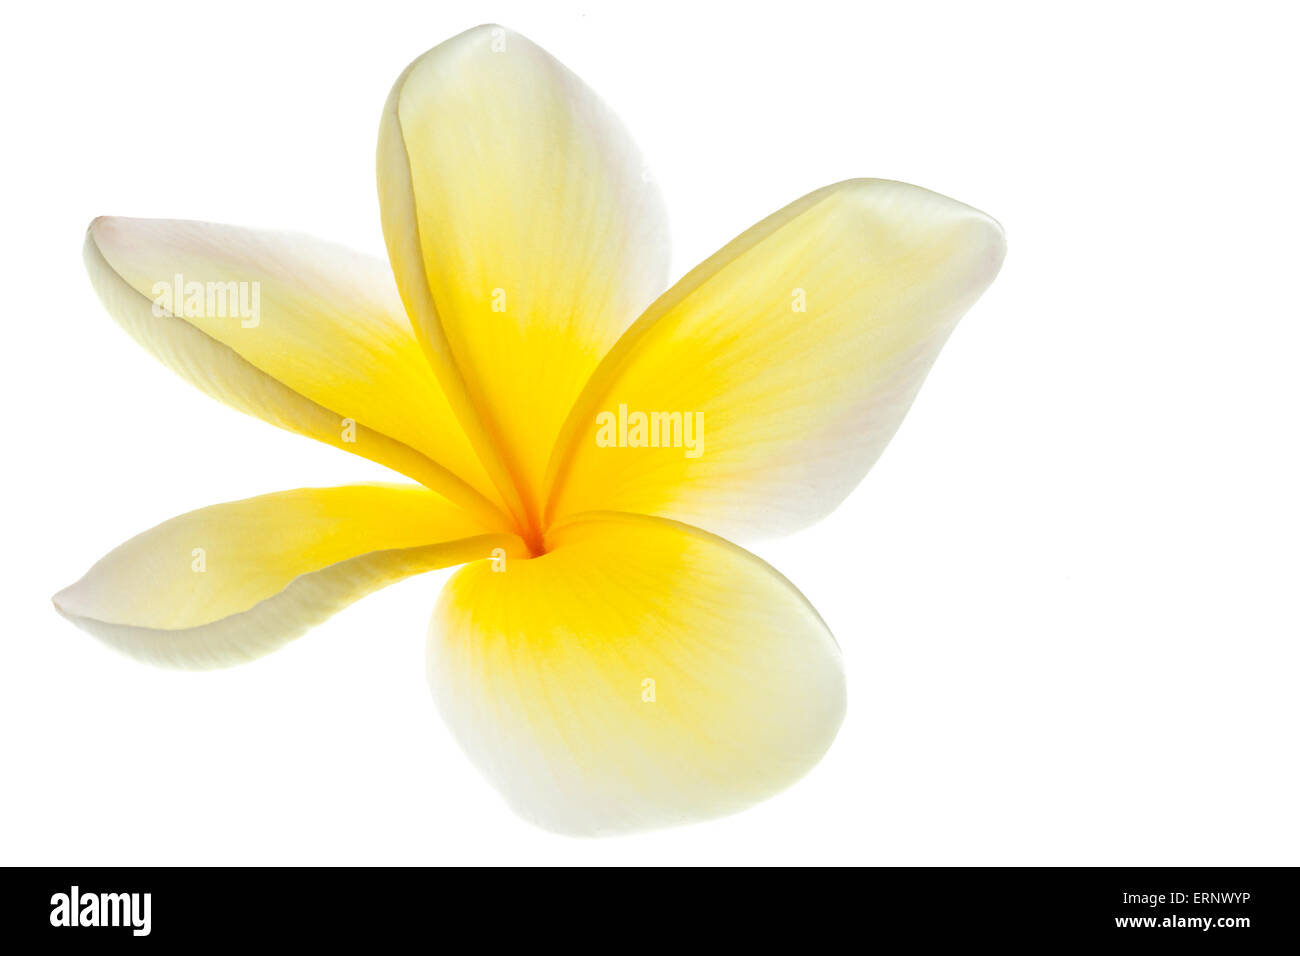 Plumeria Frangipani Flower Yellow And White Tropical Flowers On